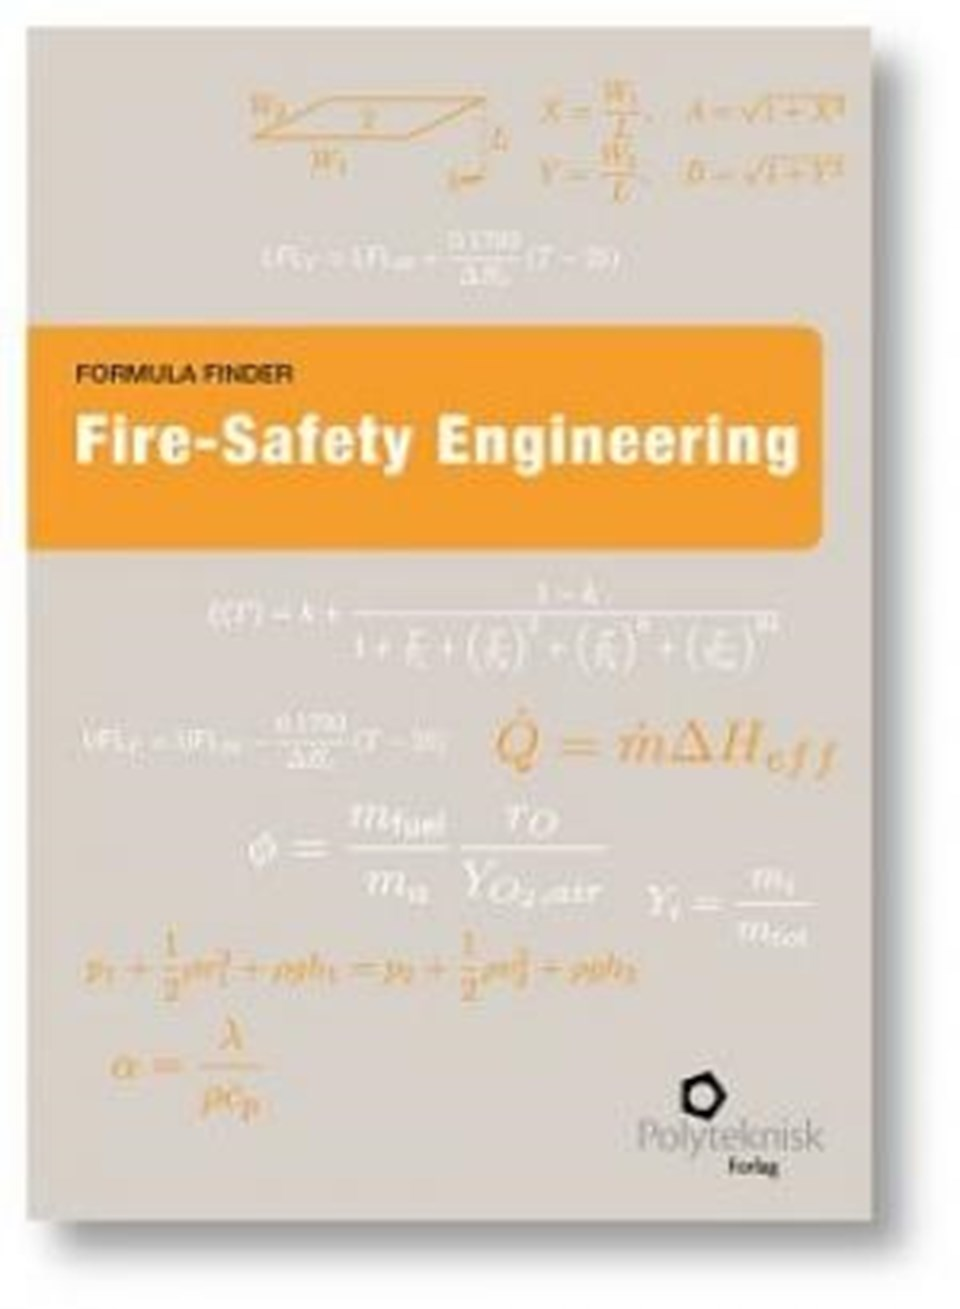 Formula Finder - Fire-Safety Engineering